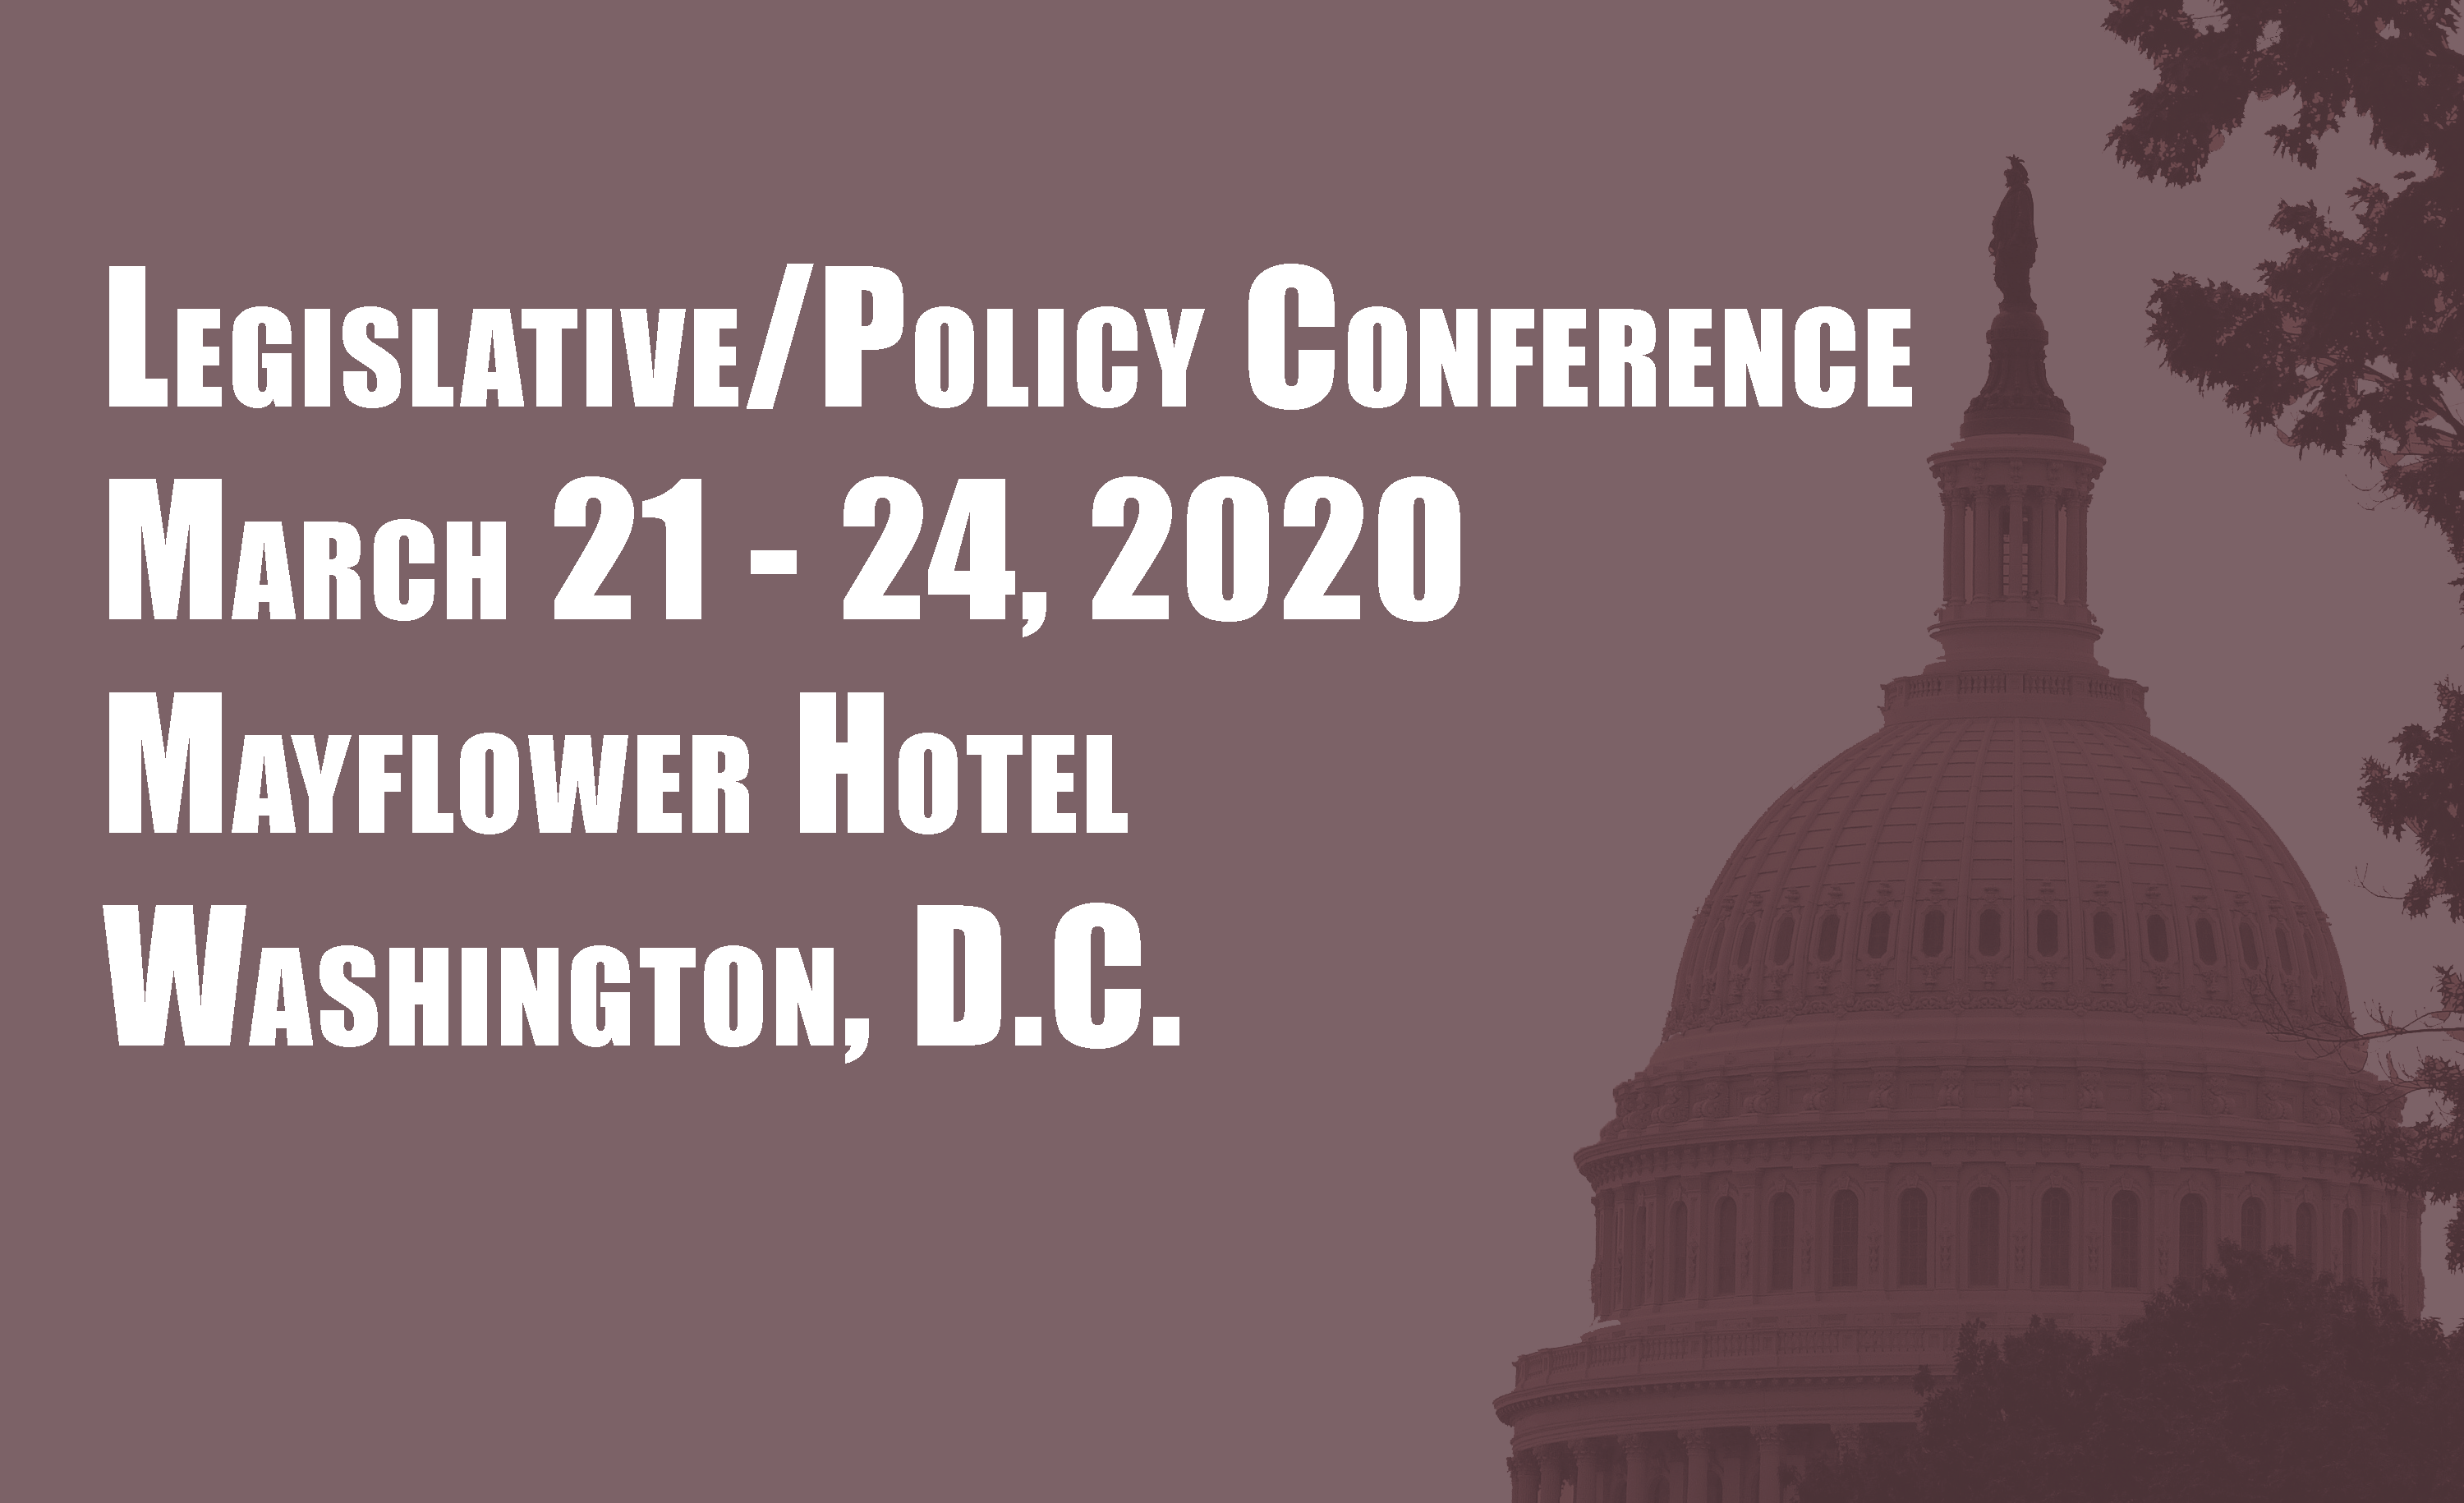 2020 Annual Legislative/Policy Conference